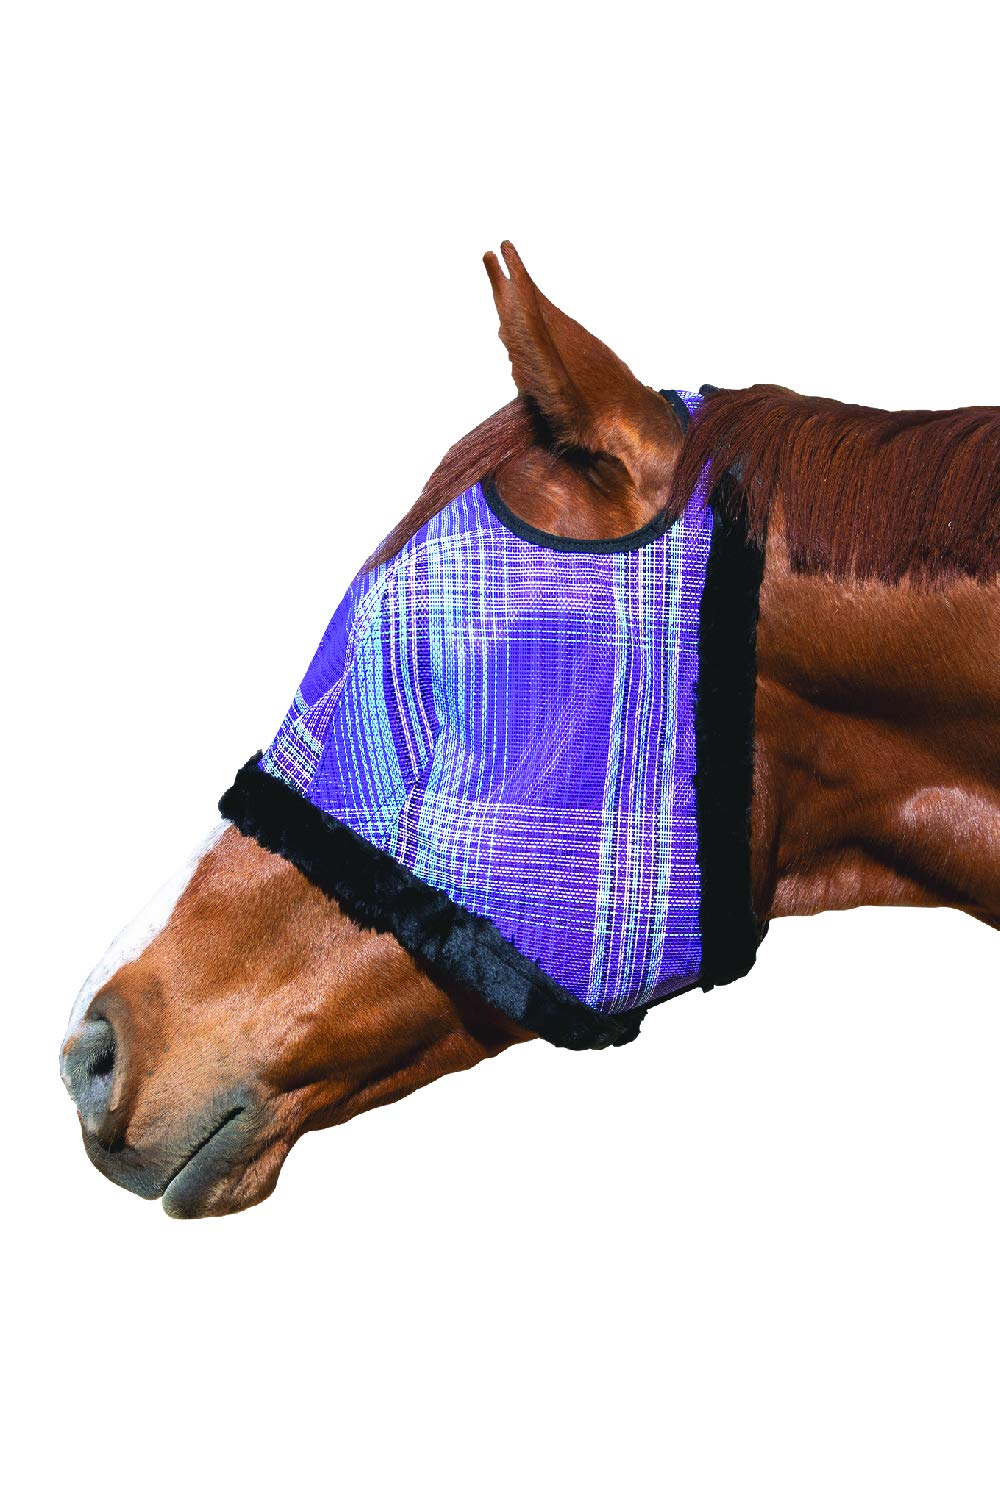 Kensington Fly Mask Fleece Trim for Horses - Protects Face, Eyes from Flies, UV Rays While Allowing Full Visibility - Breathable Non Heat Transferring, Perfect Year Round, (XXL, Lavender Mint)